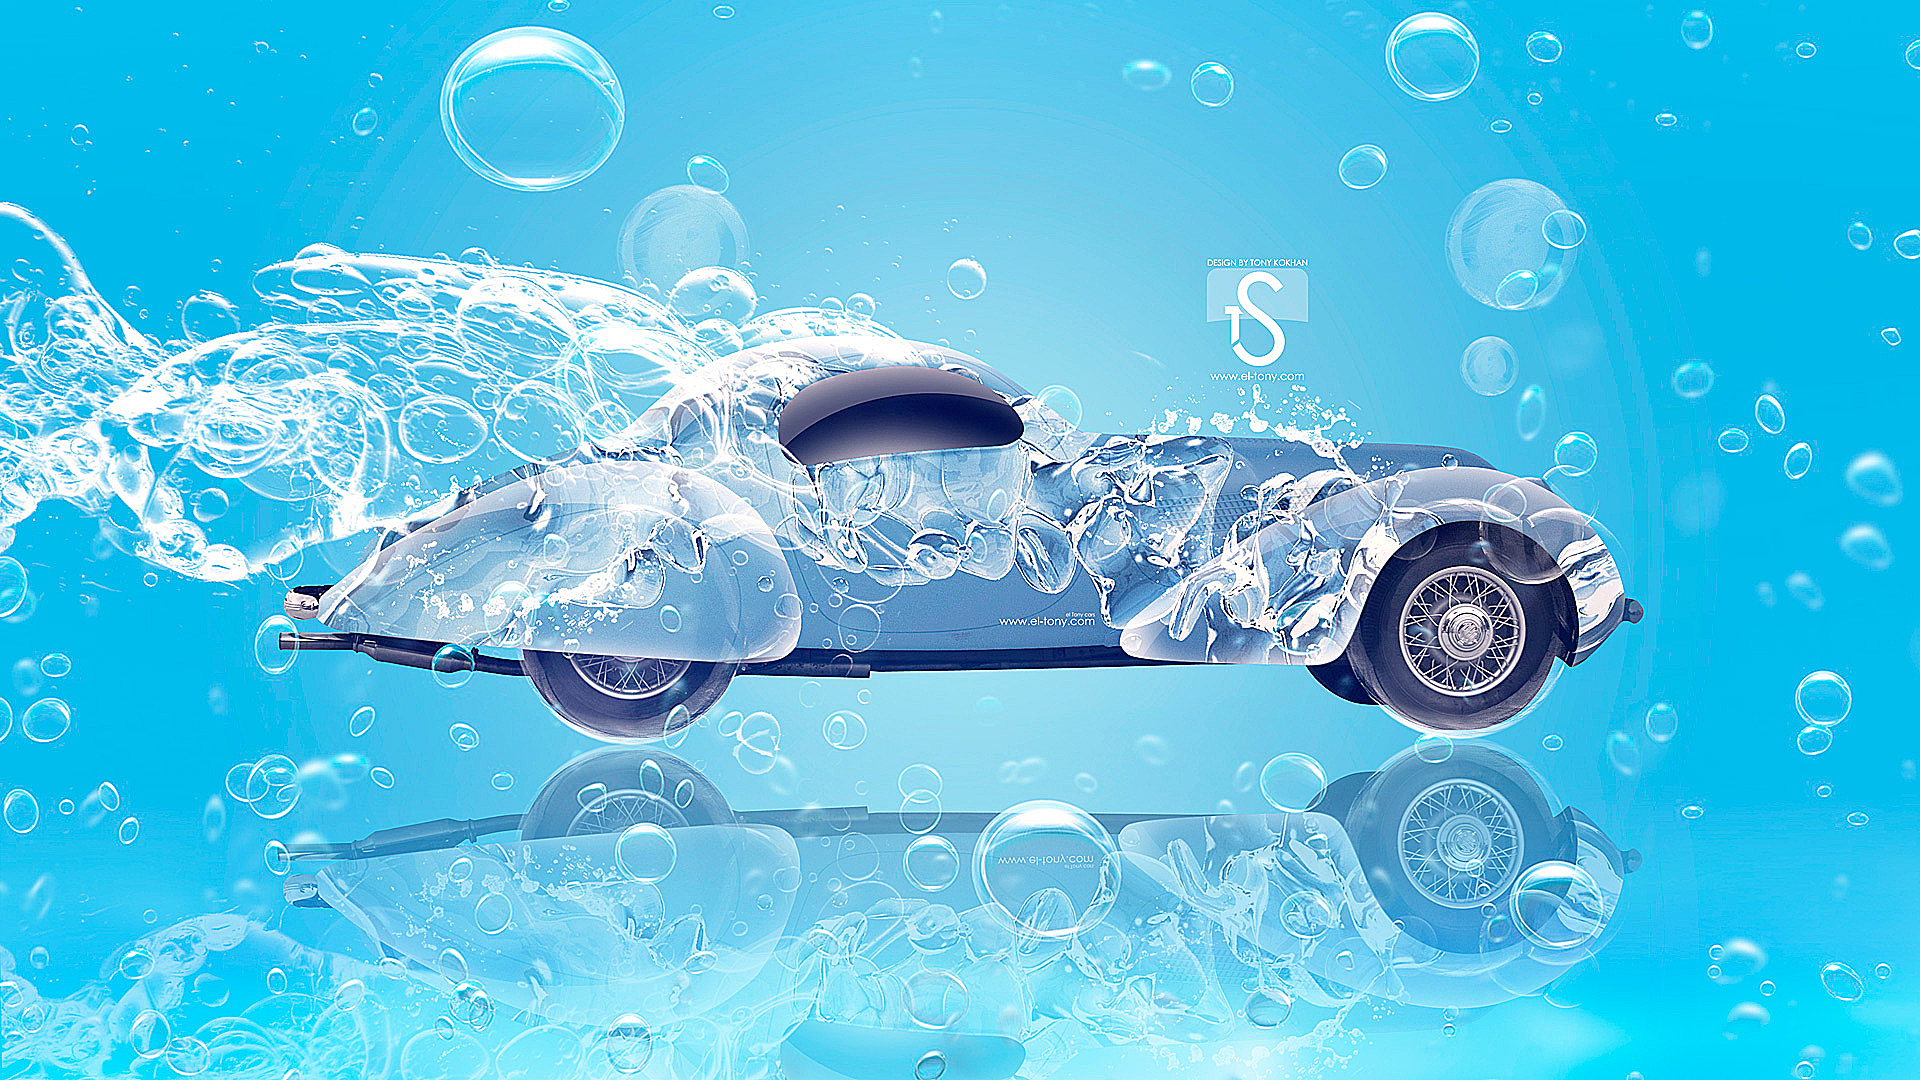 Water Design Wallpaper : Retro water car el tony